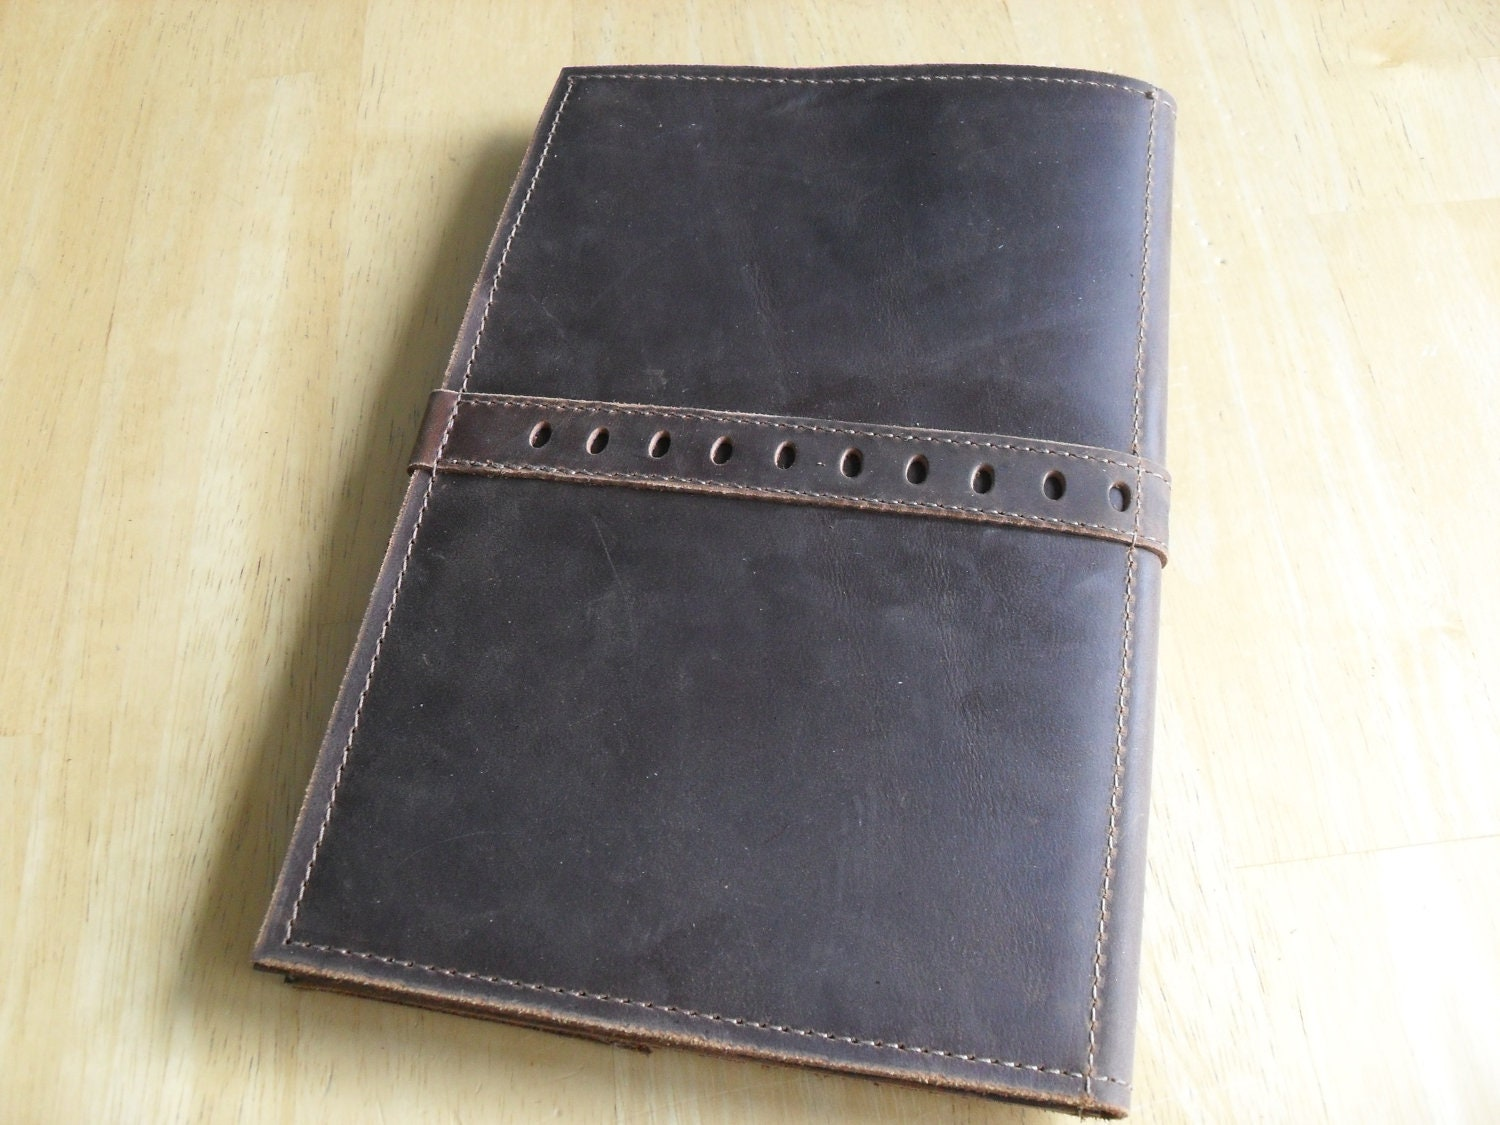 small leather portfolio or writing case the